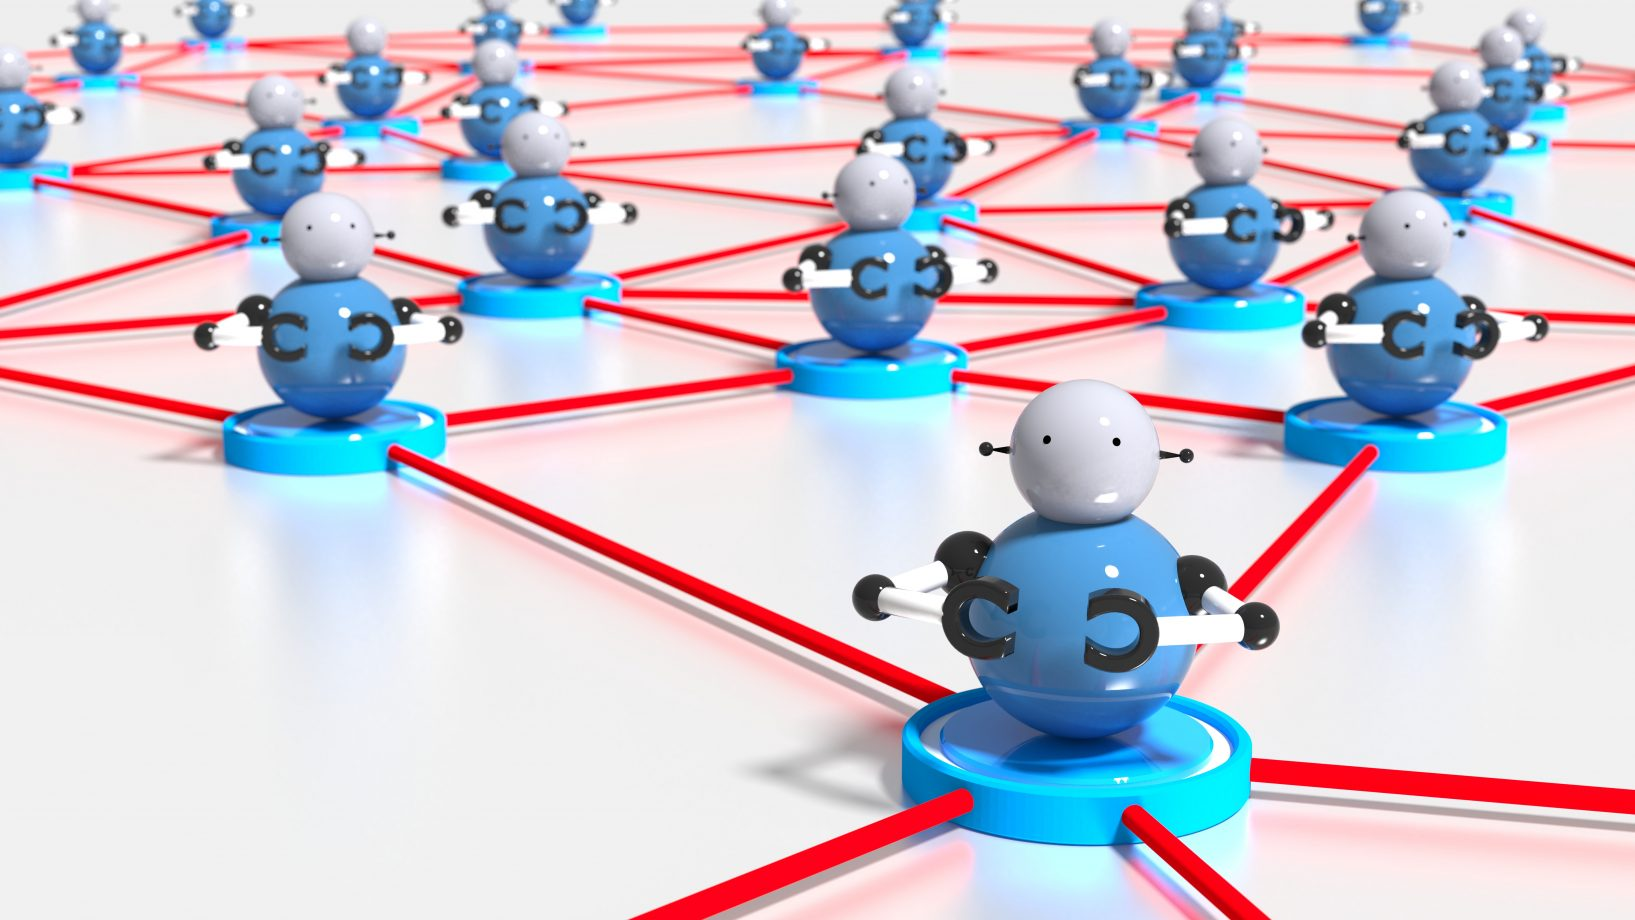 Botnets Are Now The New Rapidly Growing Hacking Techniques